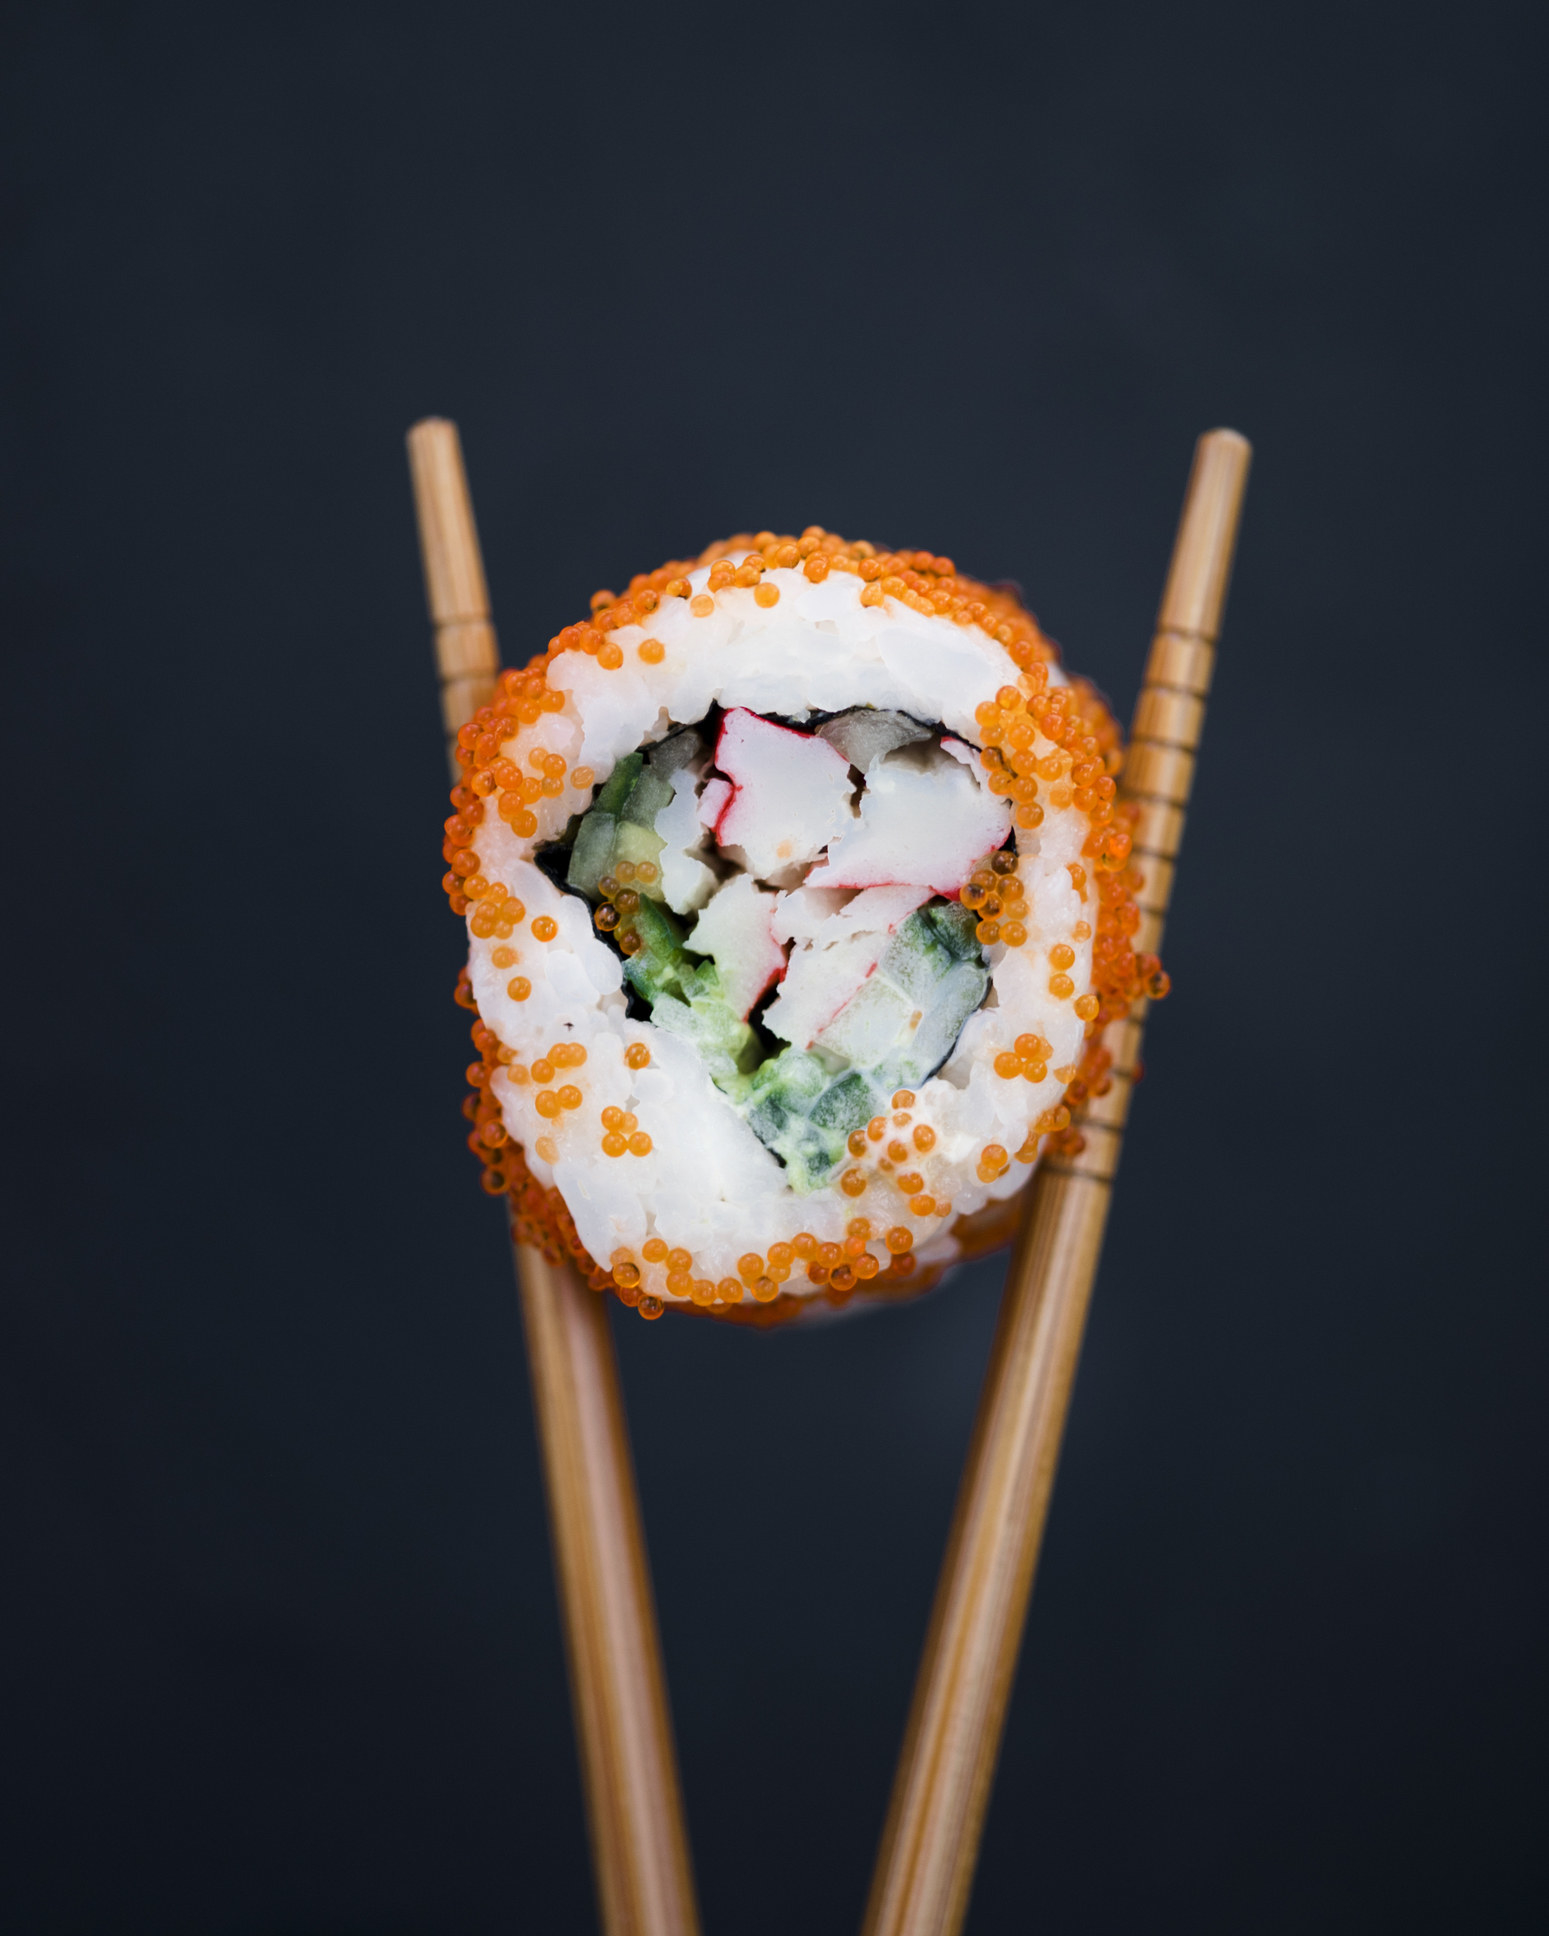 Someone holding a piece of sushi between chopsticks.